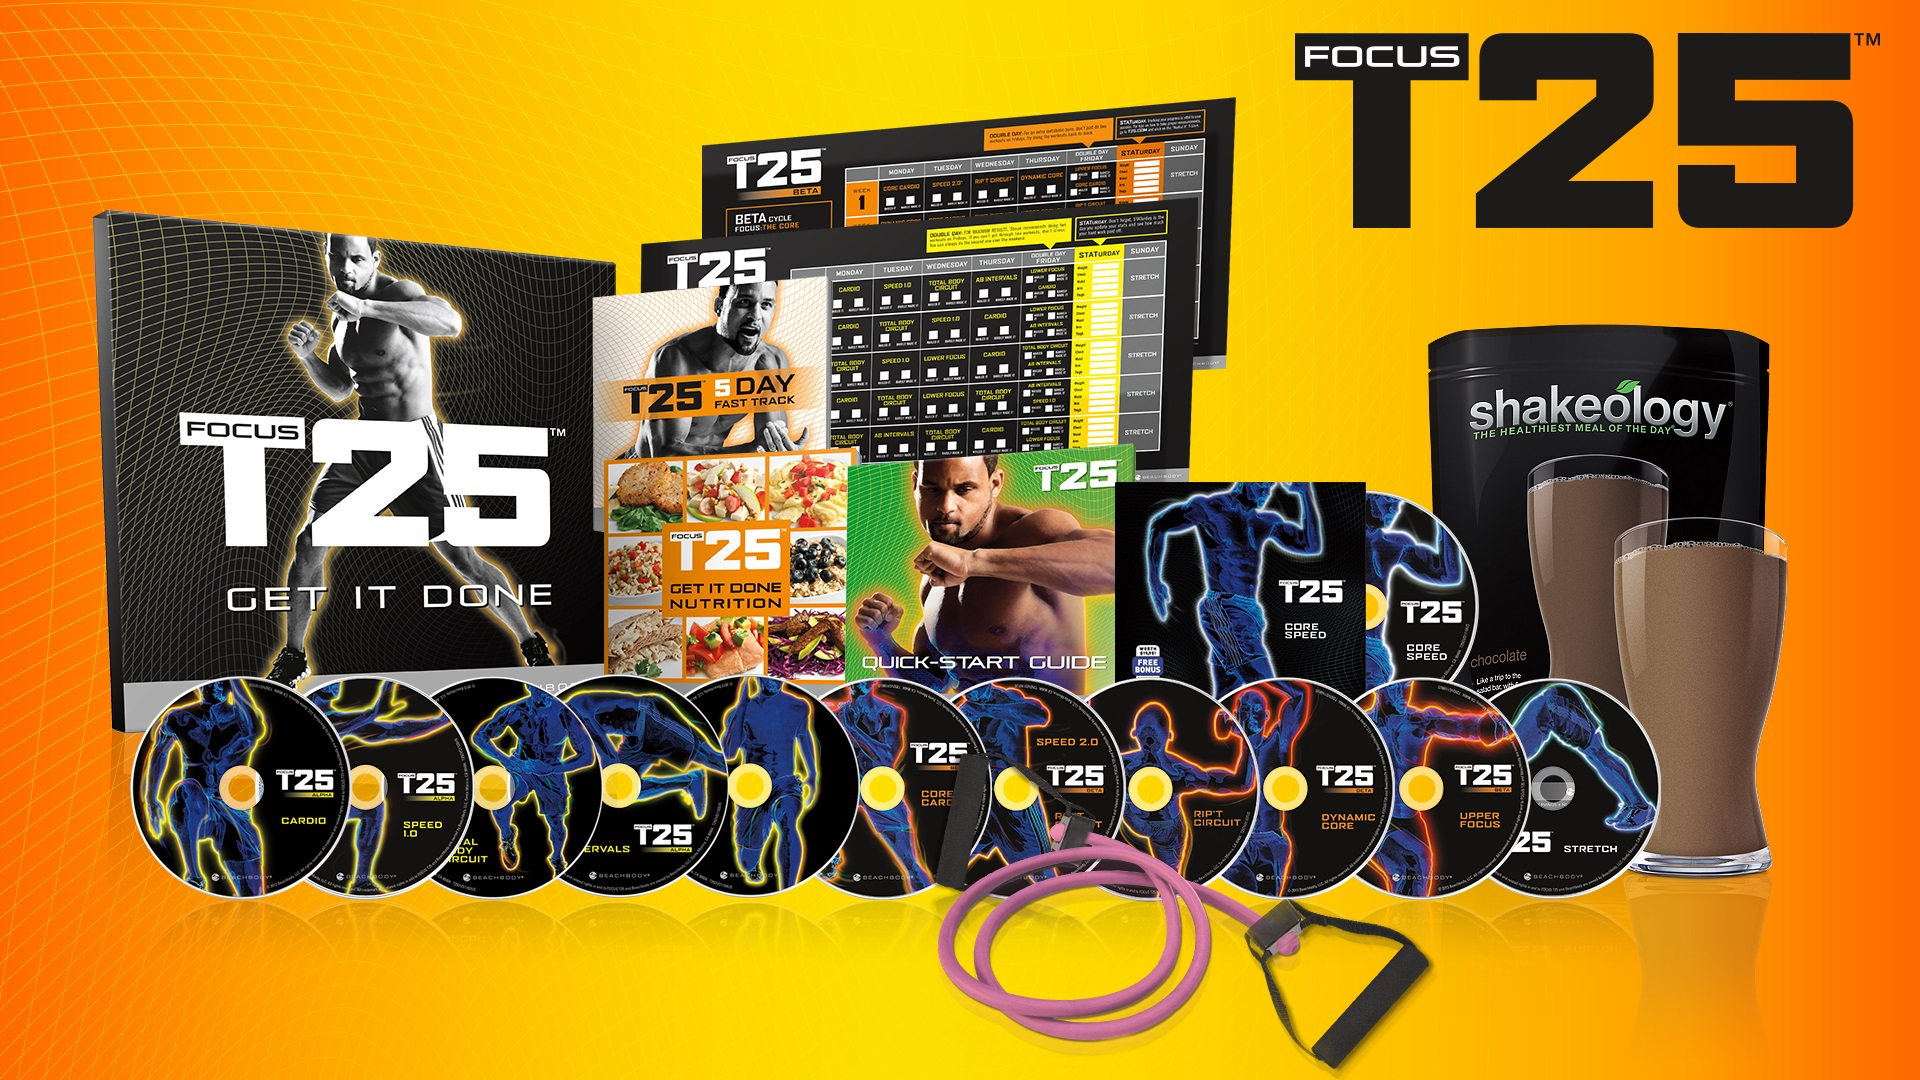 FOCUS T25 Workout